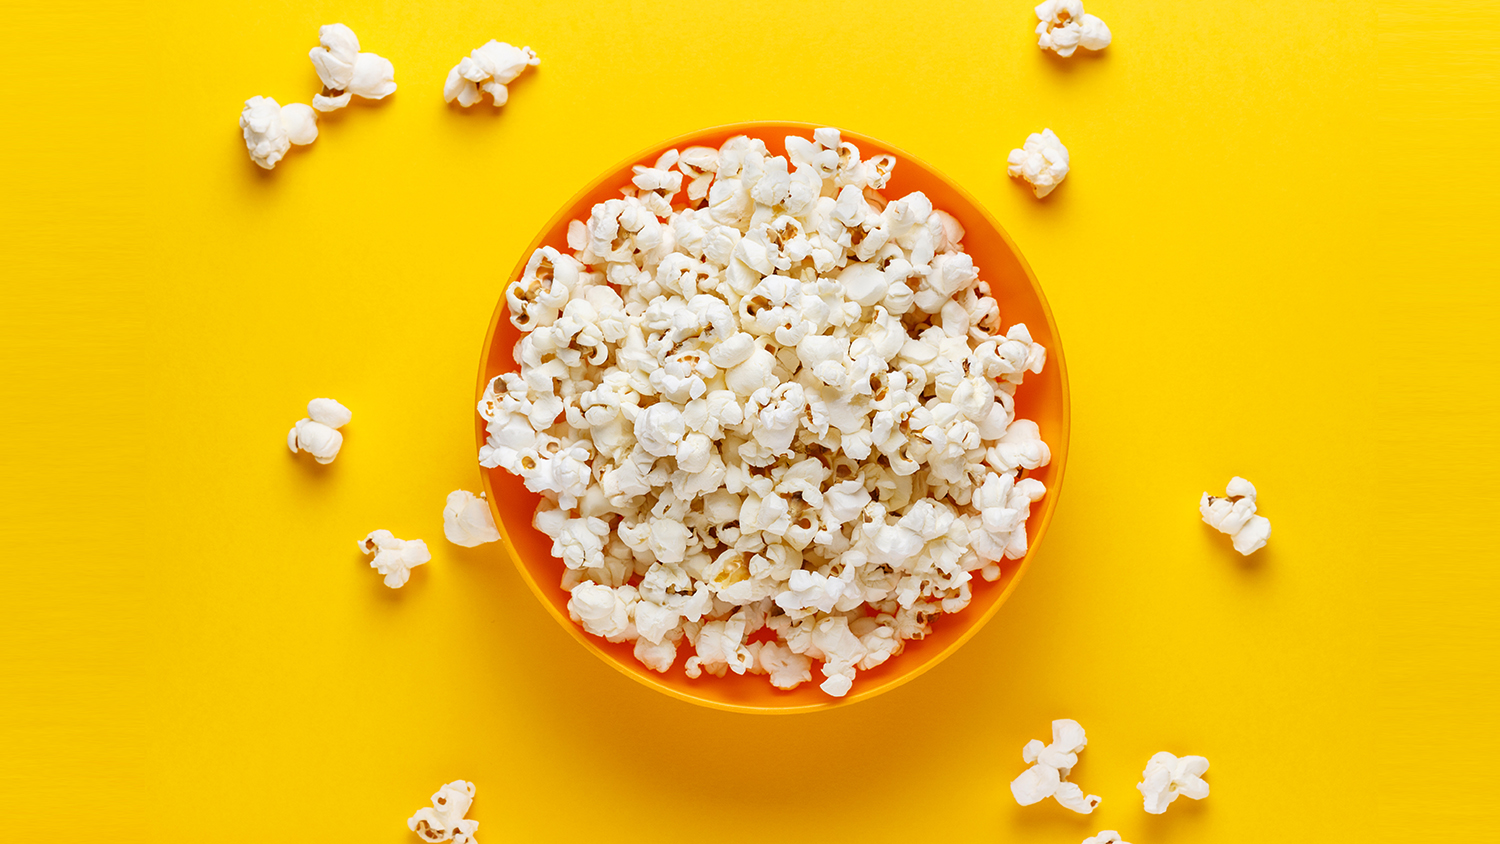 5 Best Popcorn Poppers For Your Next At-Home Movie Night